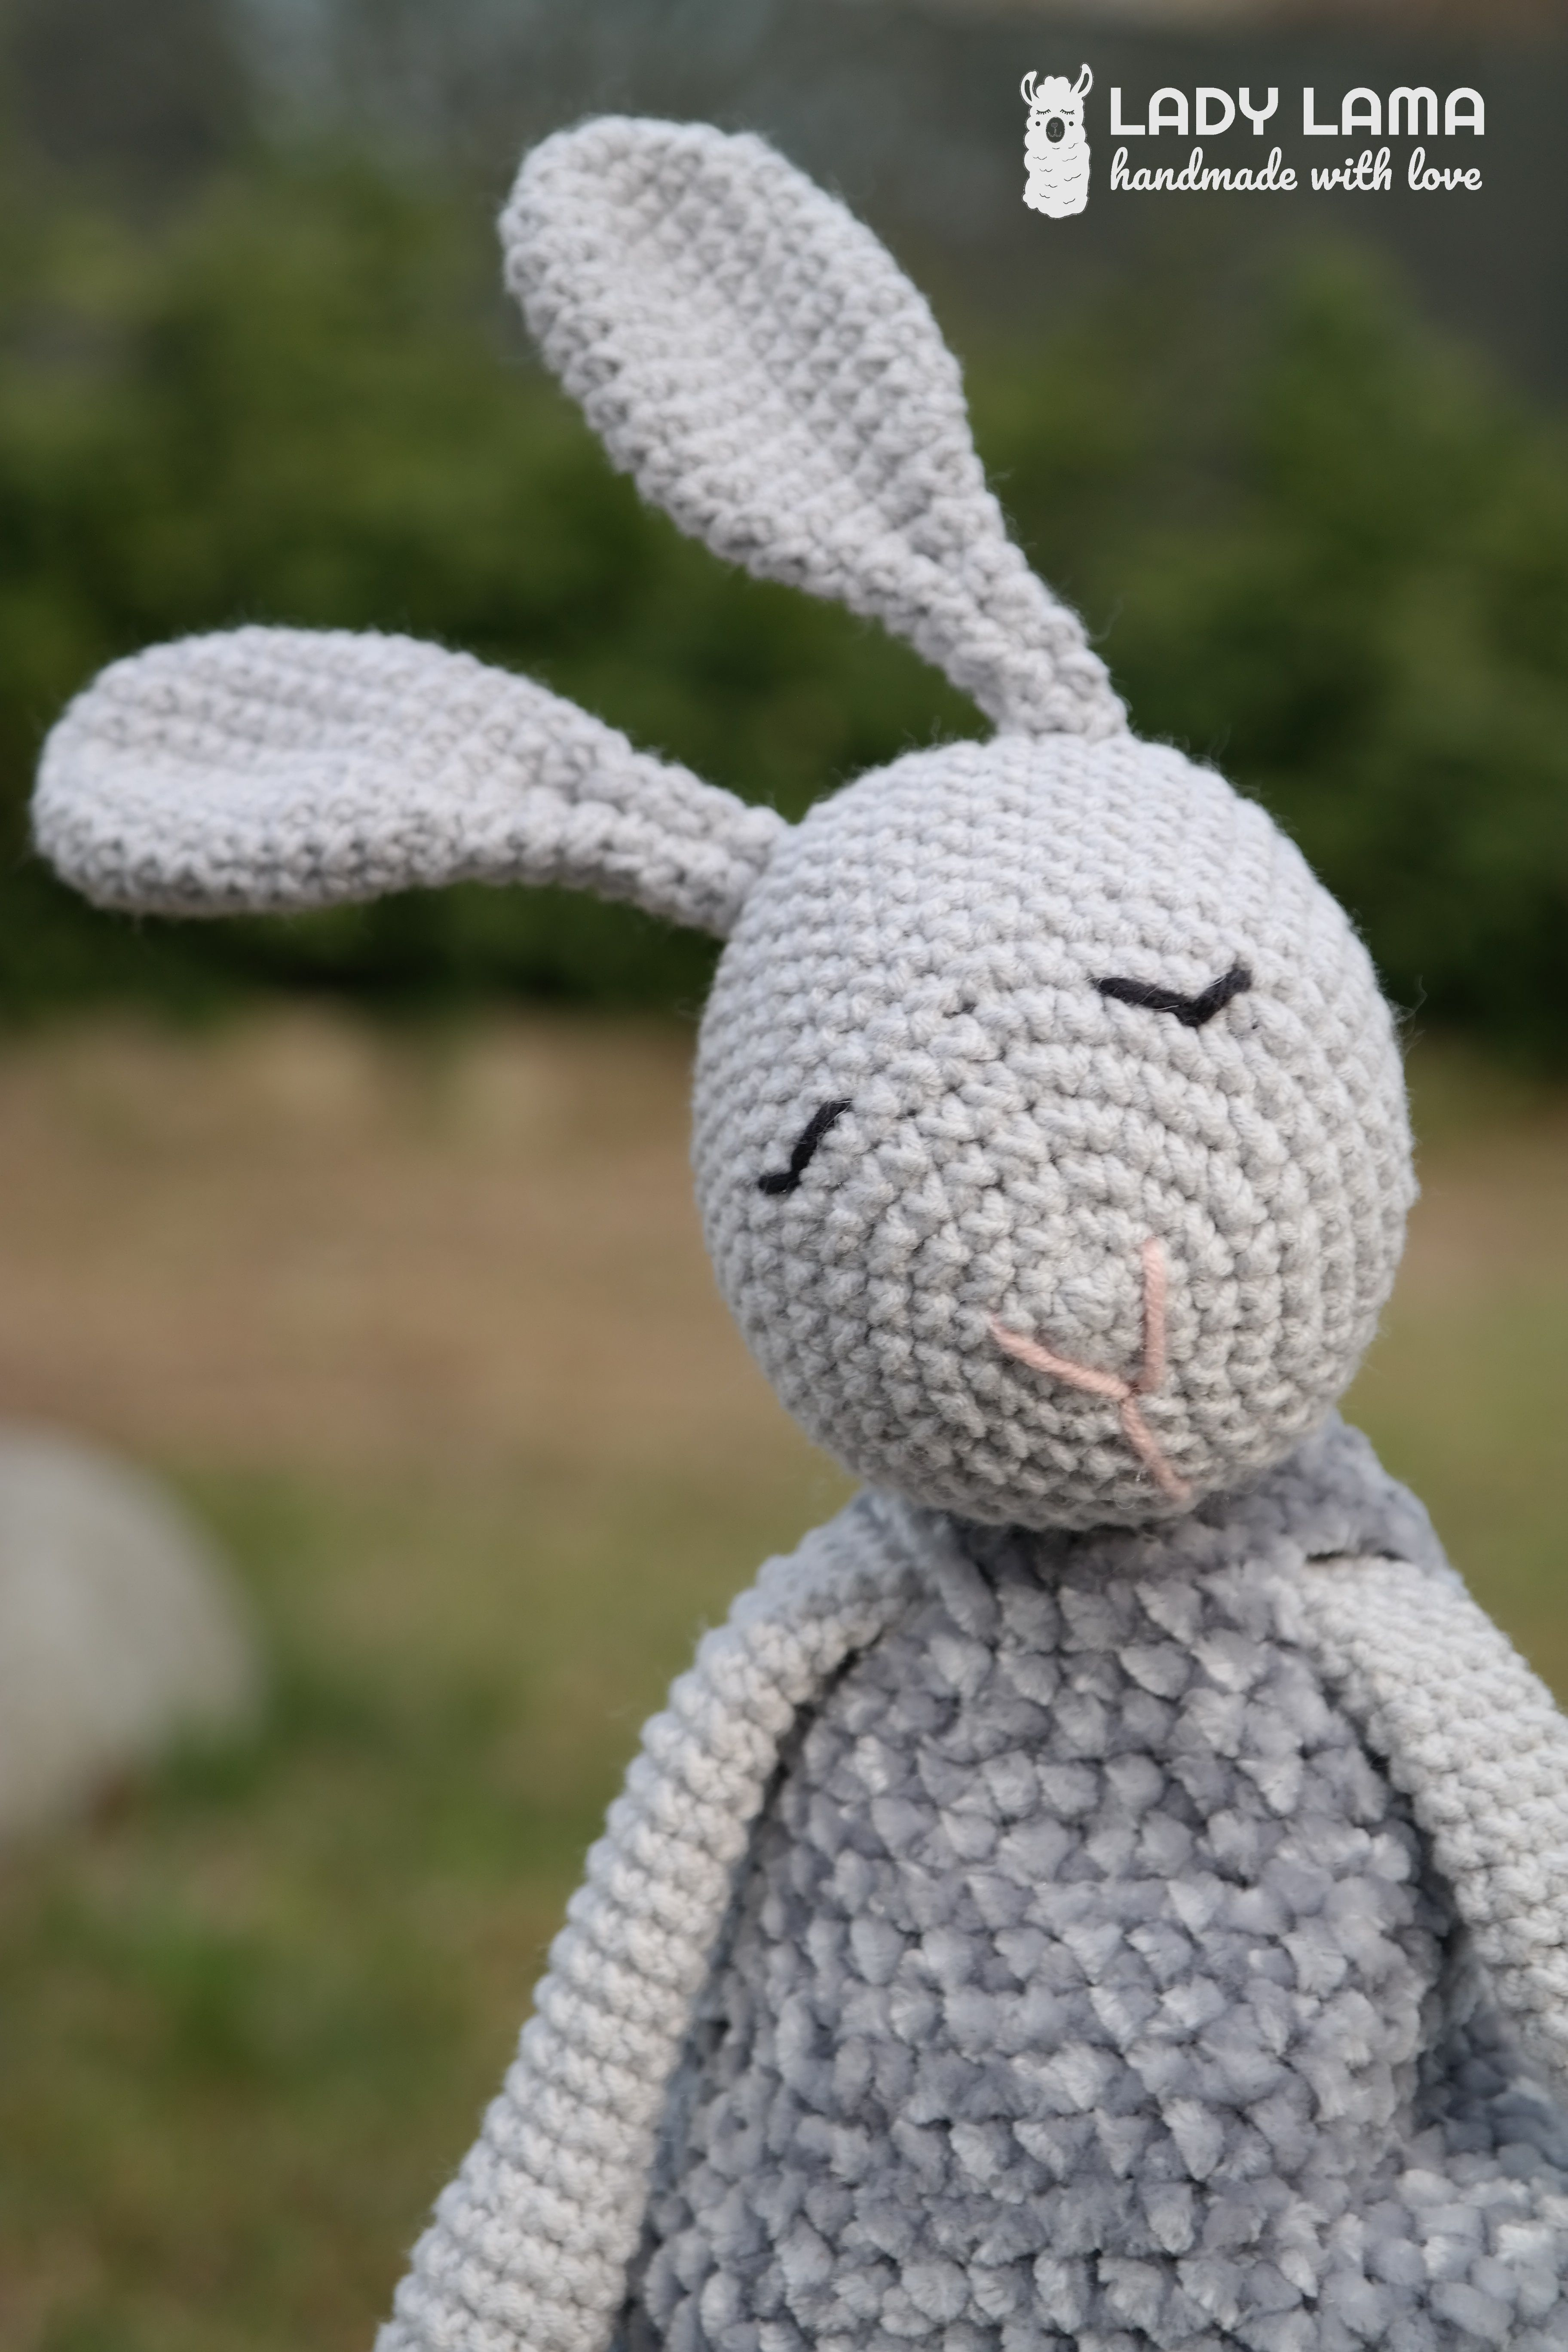 Ravelry: Doll LILLY by CAROcreated design | Crochet dolls, Lilly ... | 5472x3648